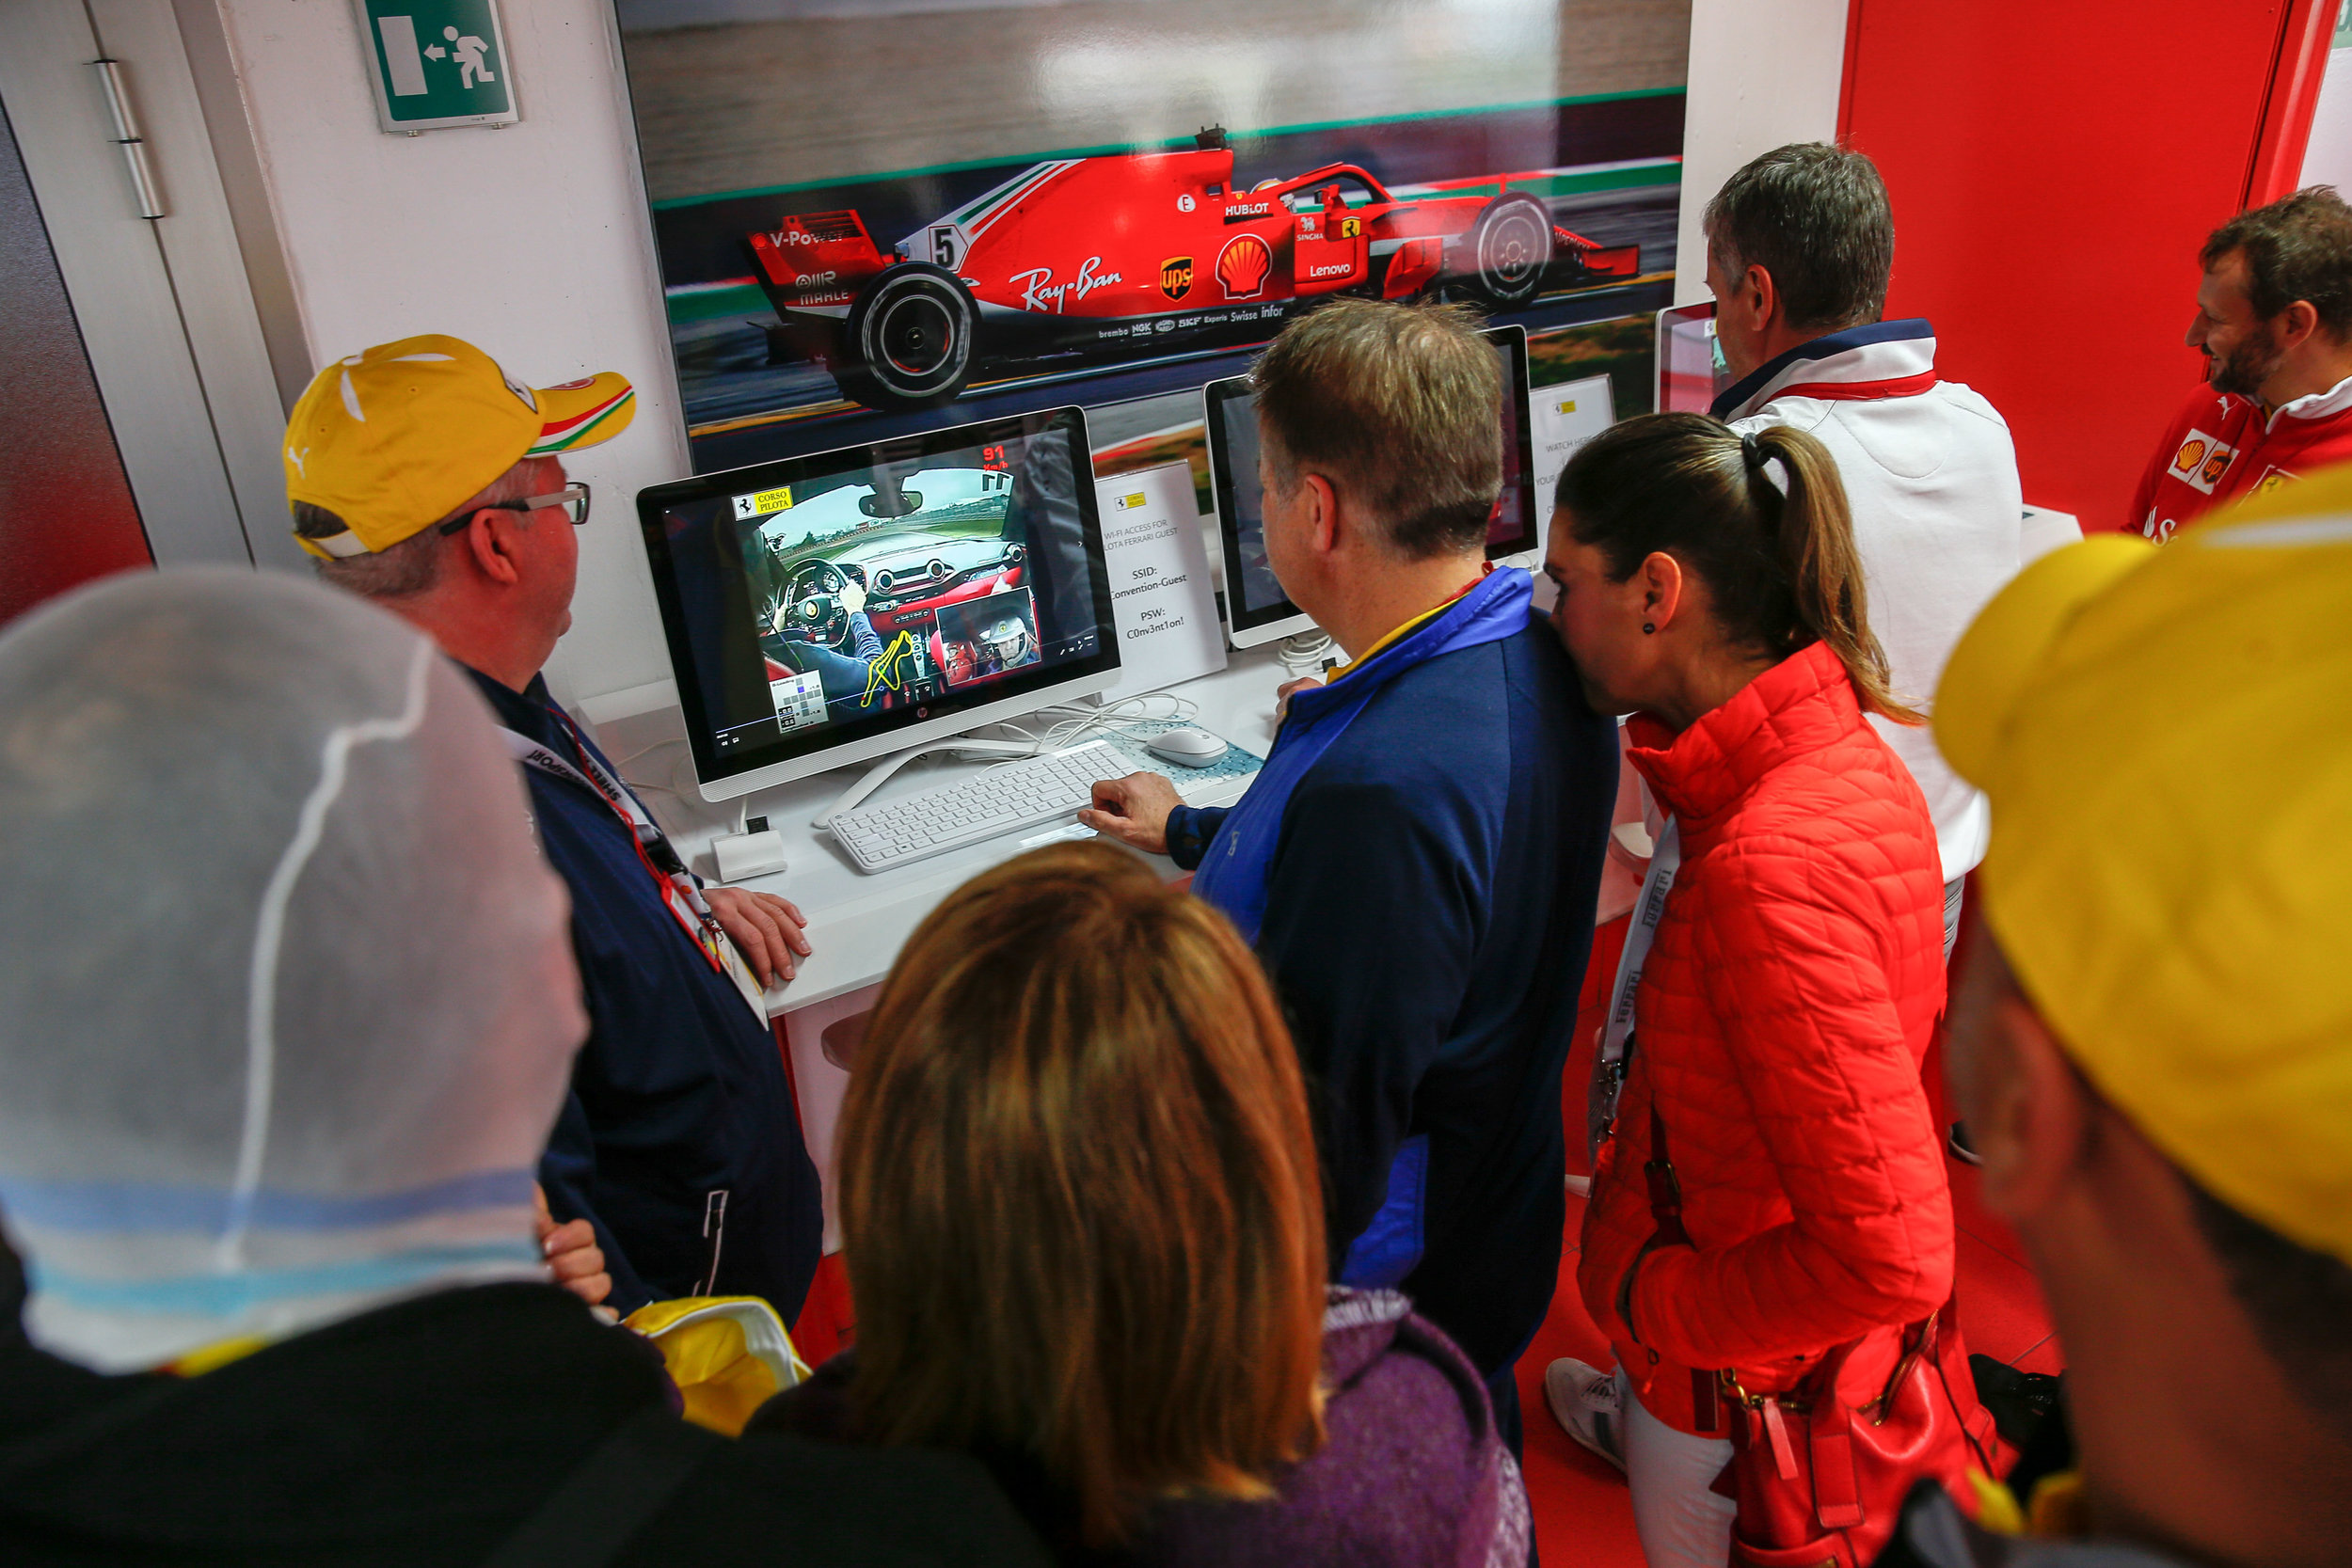 Our guests looking over telemetry data and onboard camera in-between drives.